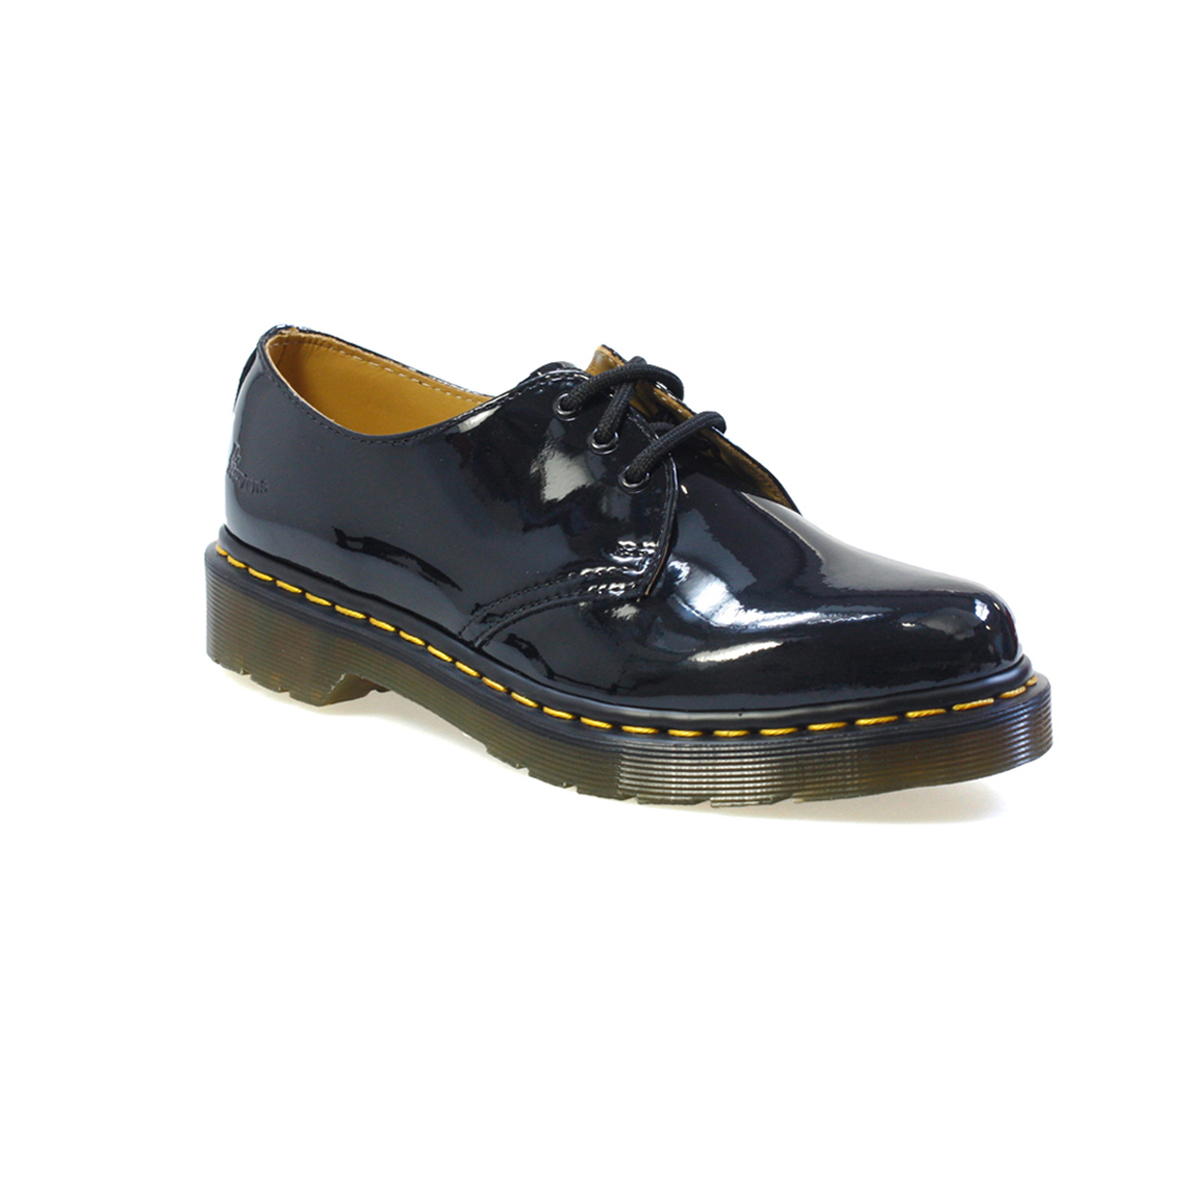 dr martens shoes image is loading dr-martens-1461-patent-lamper-black-shoes kwexdrb